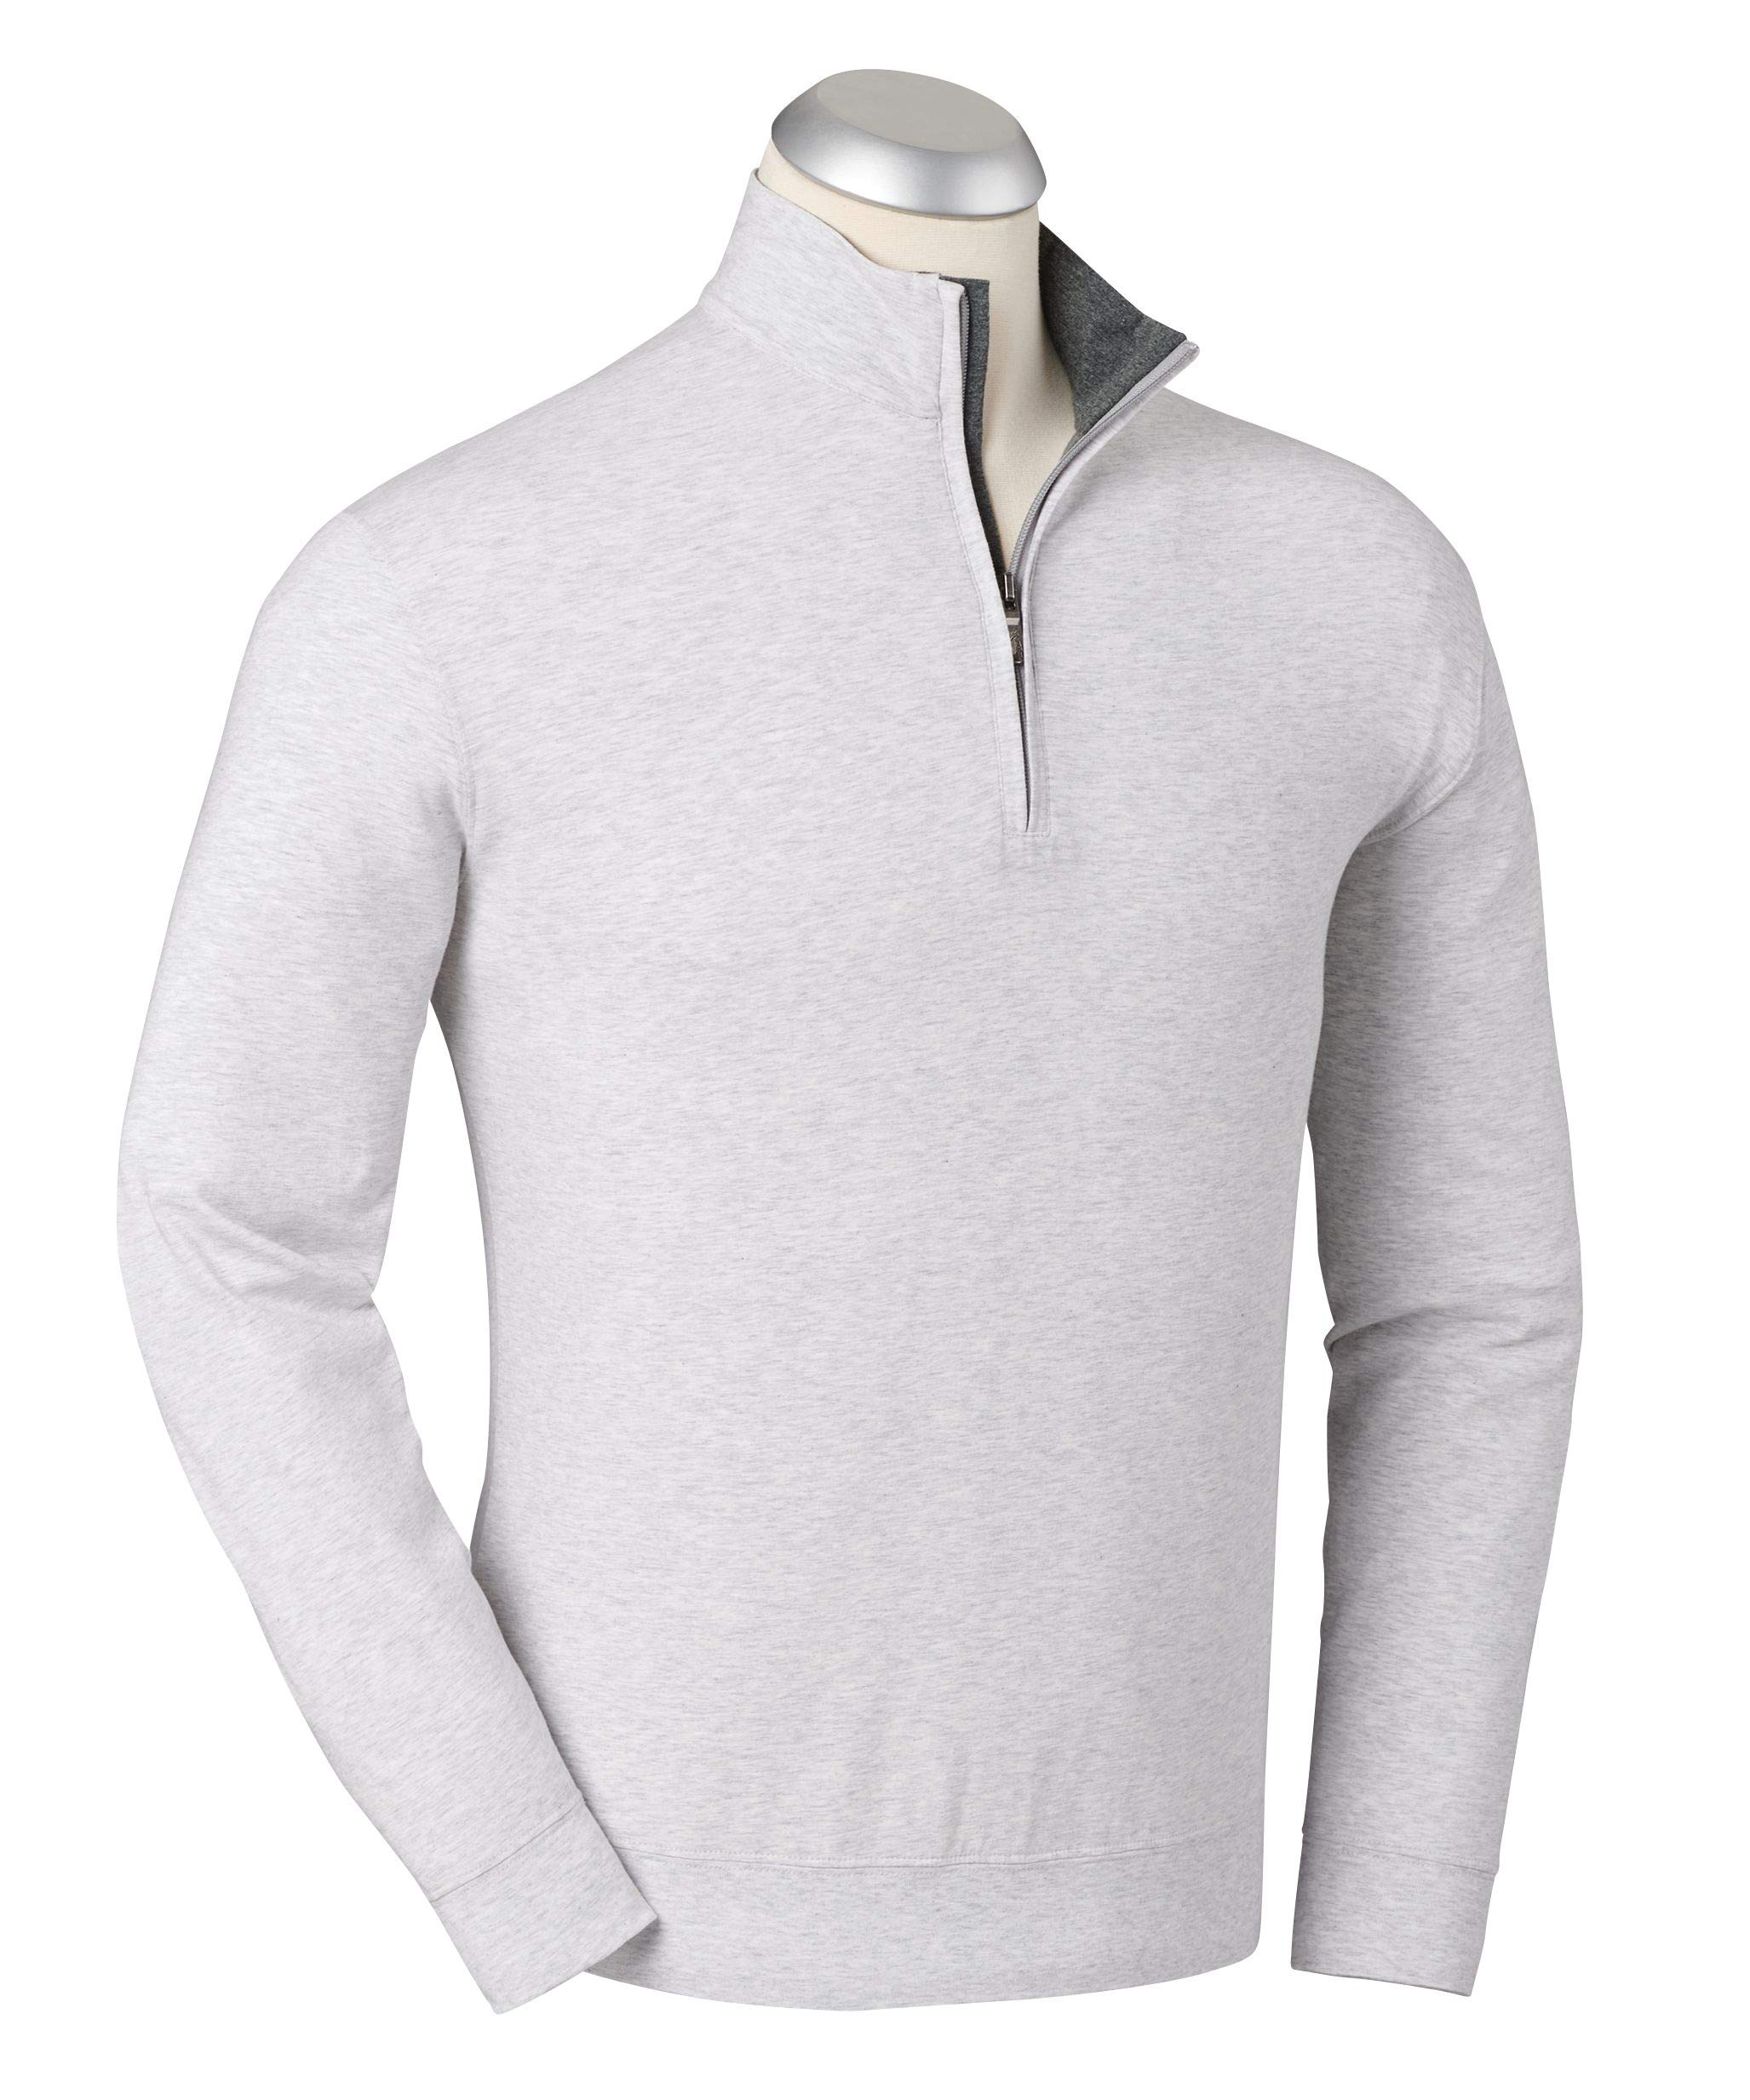 Bobby Jones Liquid Cotton Stretch Golf Pullover - Men's 1/4 Zip Pullover Golf Apparel Heather Grey